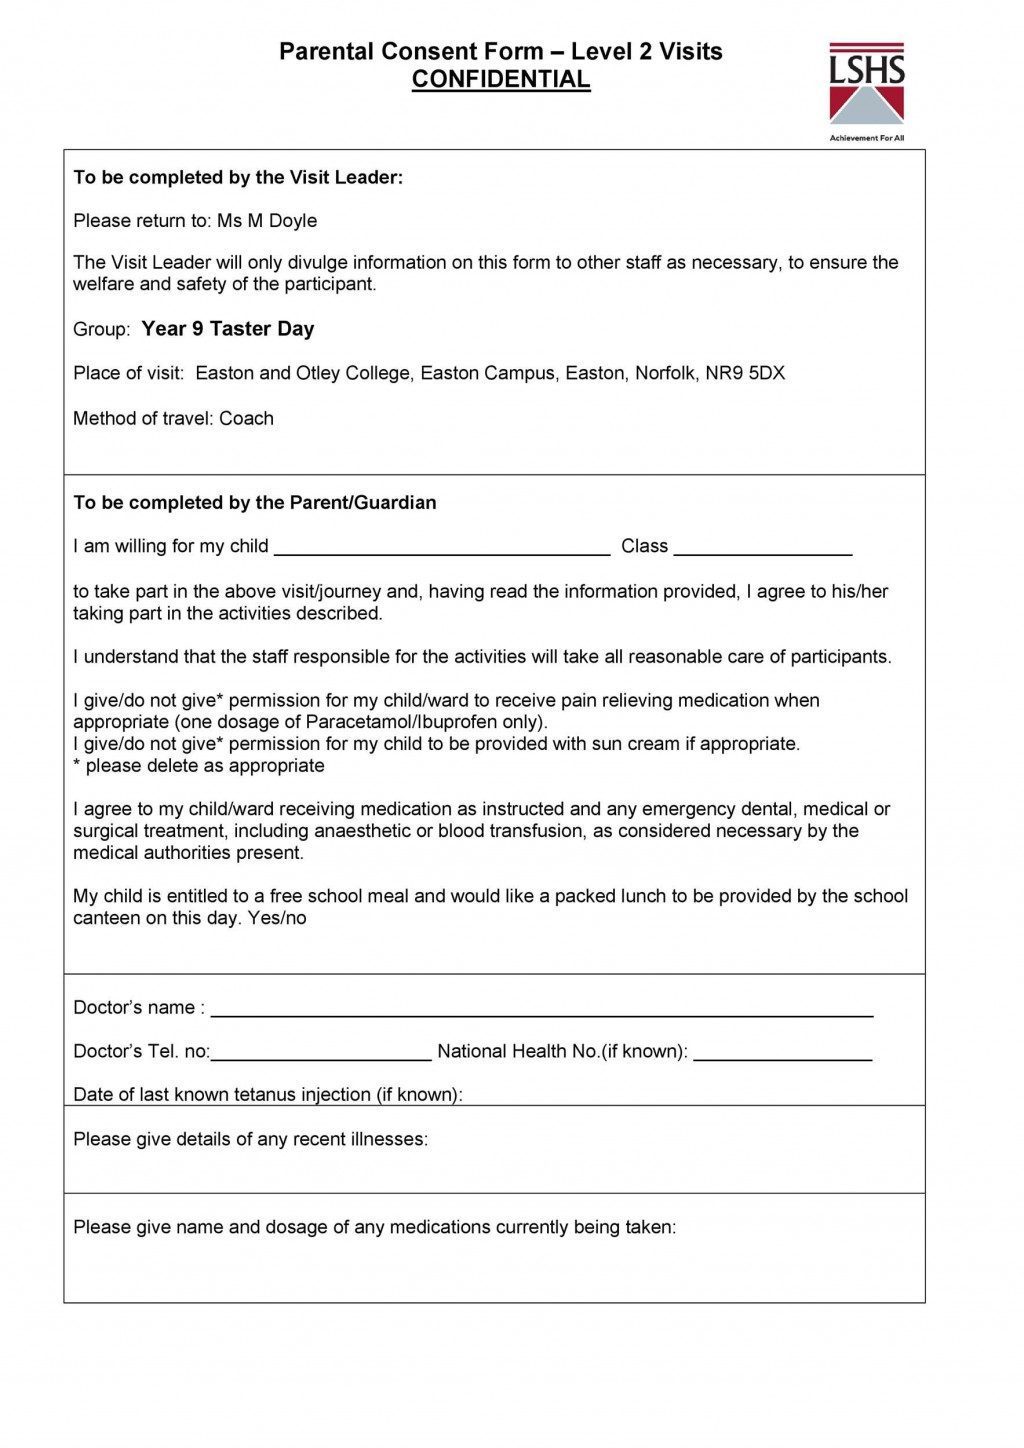 009 Staggering Free Parental Medical Consent Form Template High Definition Large